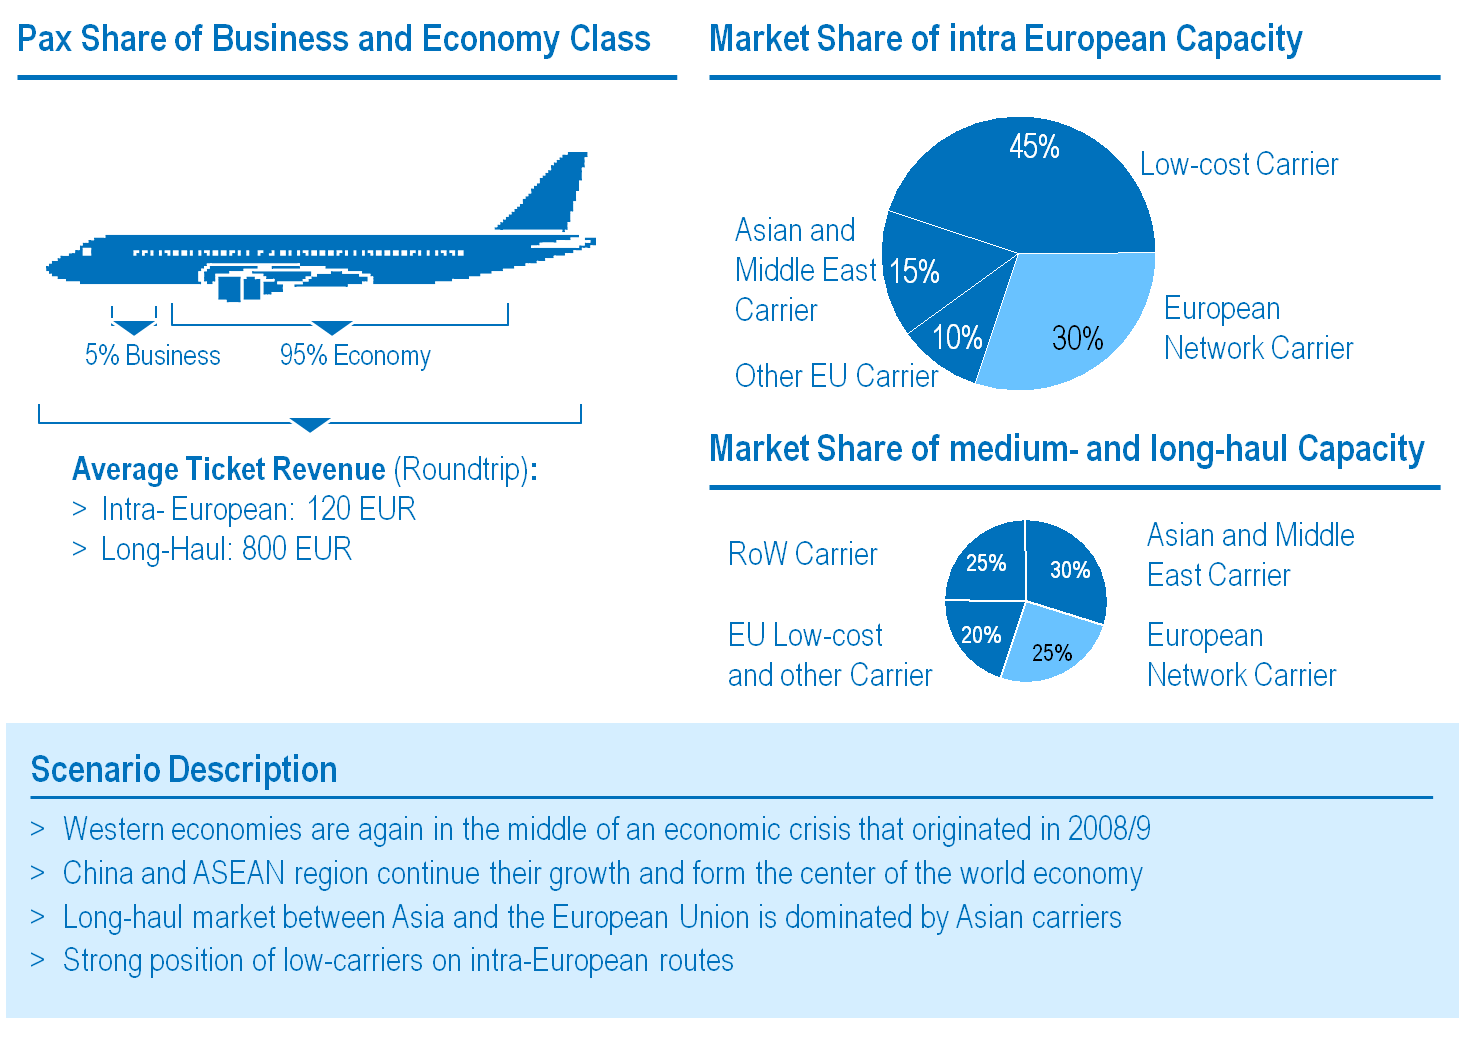 of a European low-cost carrier, I feel reminded of the years when we started short-haul flights in Europe.